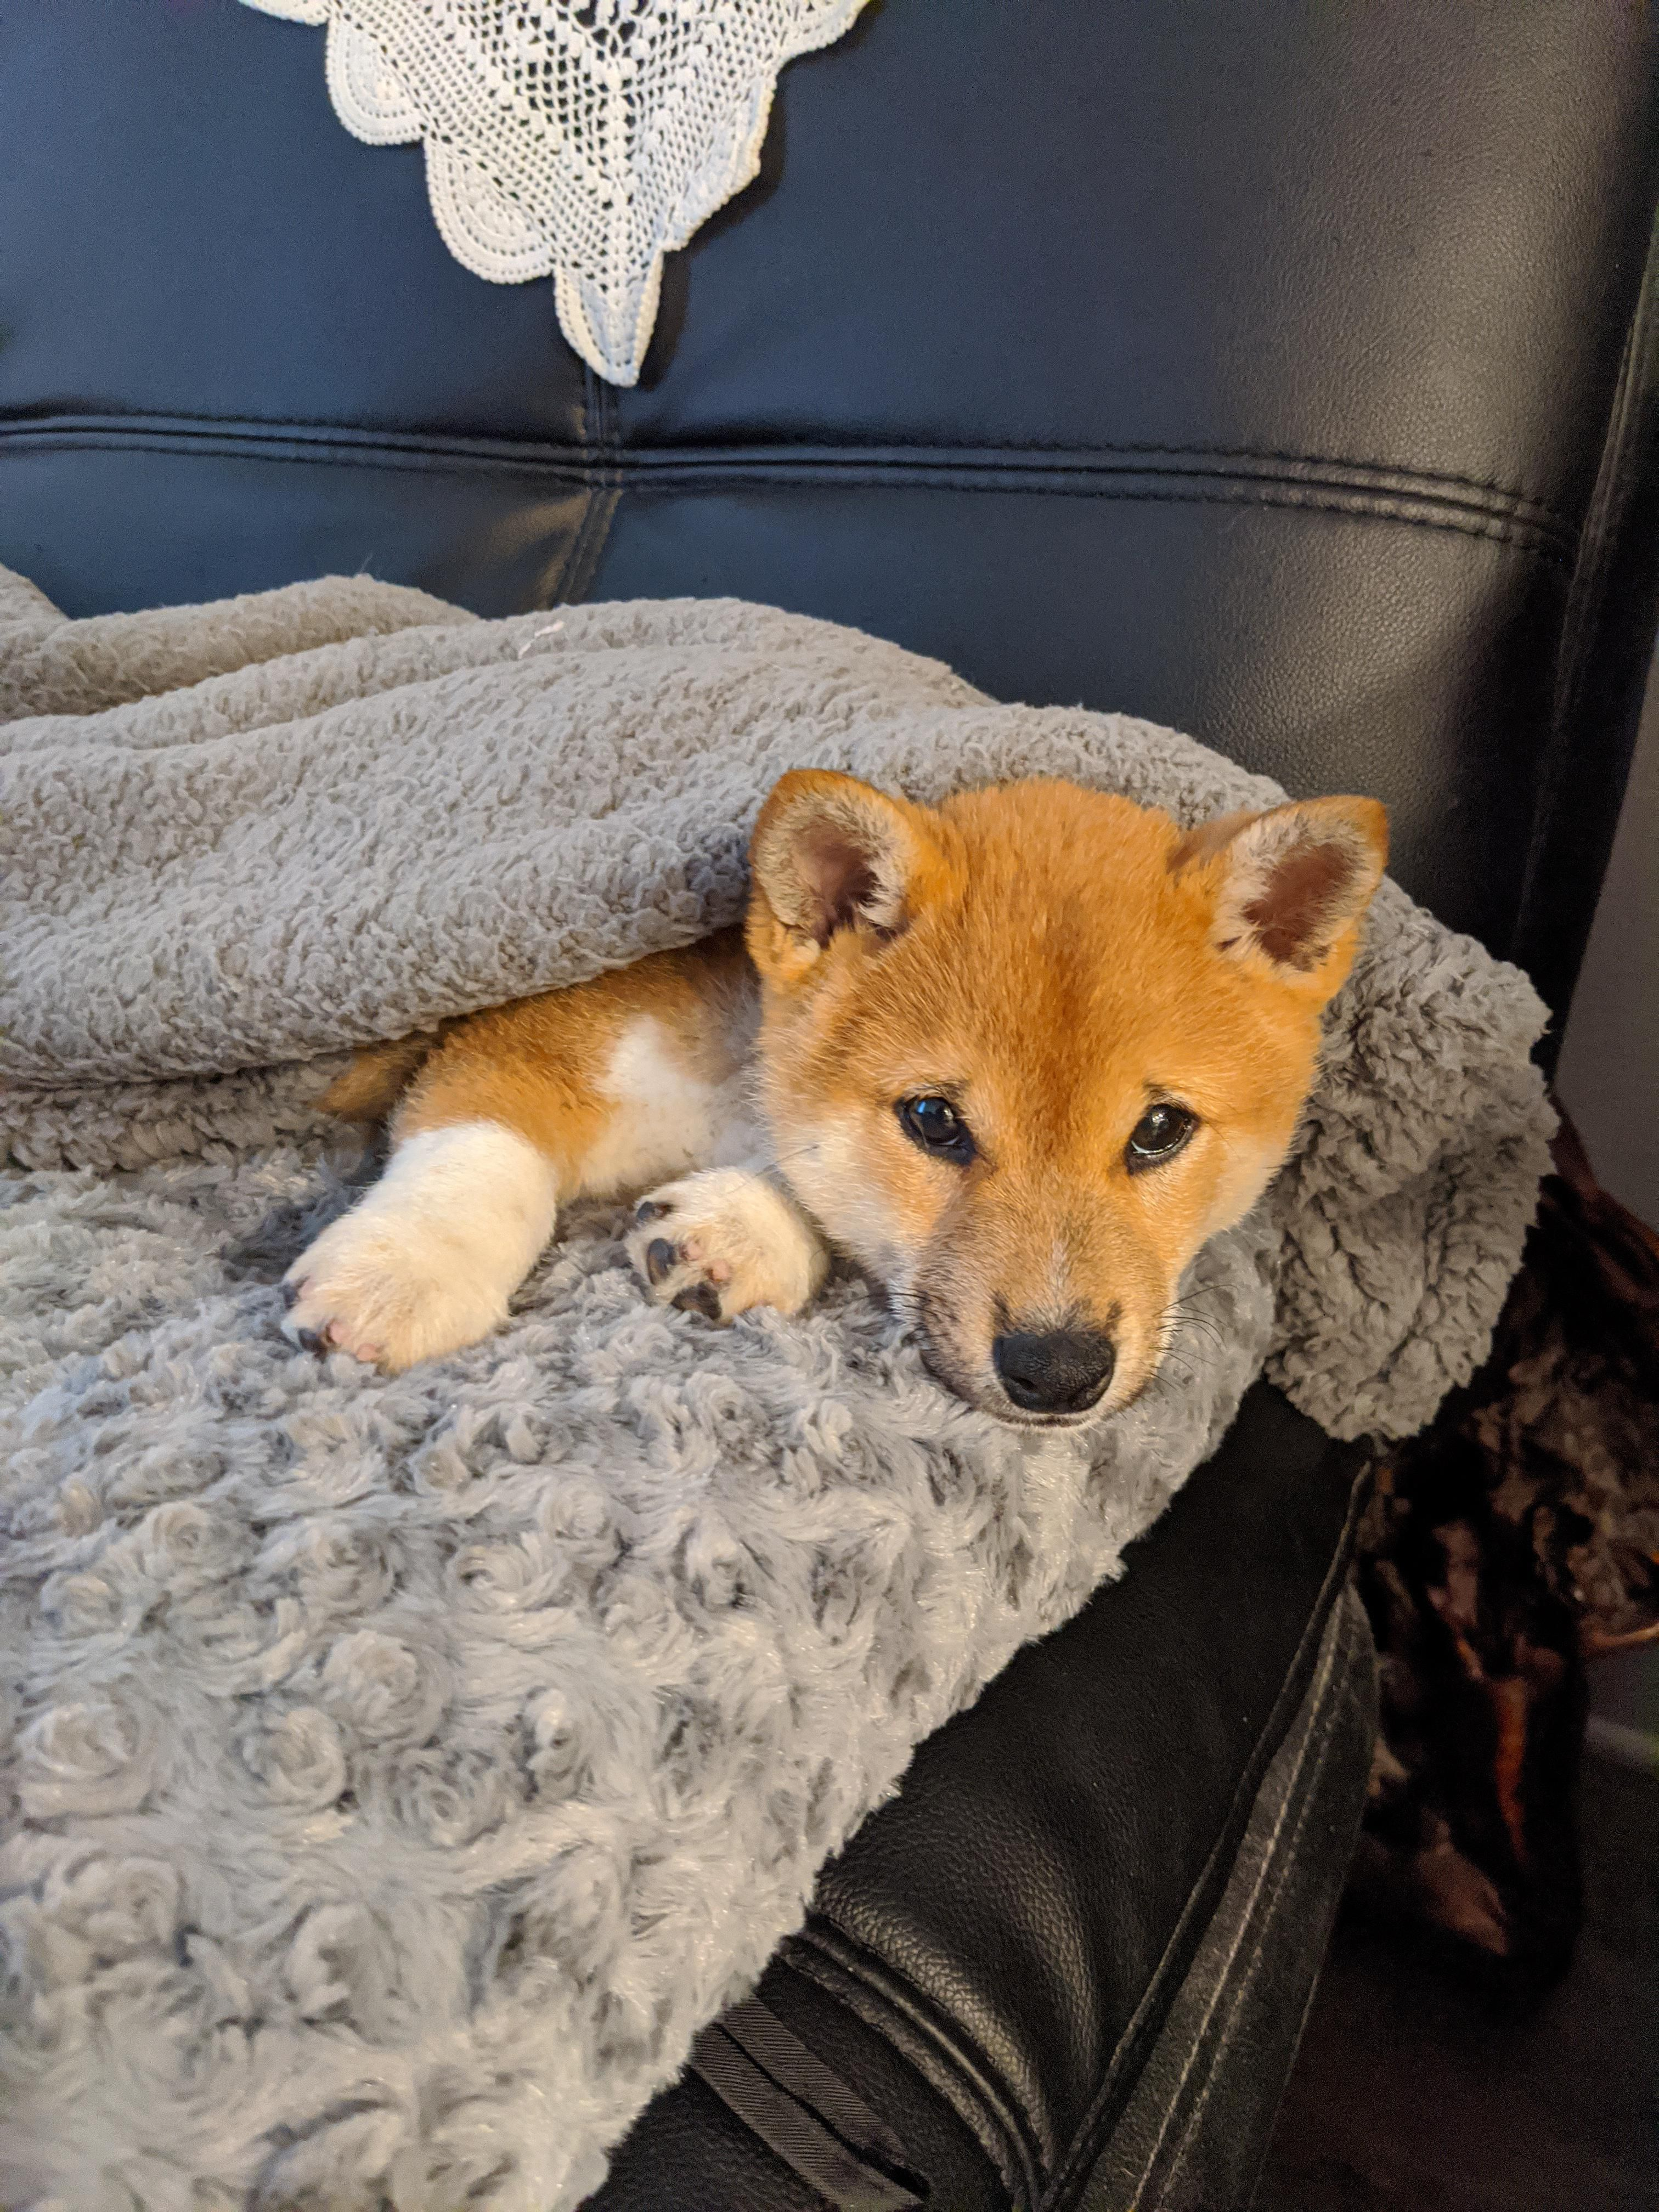 Don T Let That Face Fool You Mycroft Is One Very Naughty Pup Shibainu We 3 Shiba Inus In 2020 Shiba Inu Puppy Breeds Shiba Inu Corgi Mix